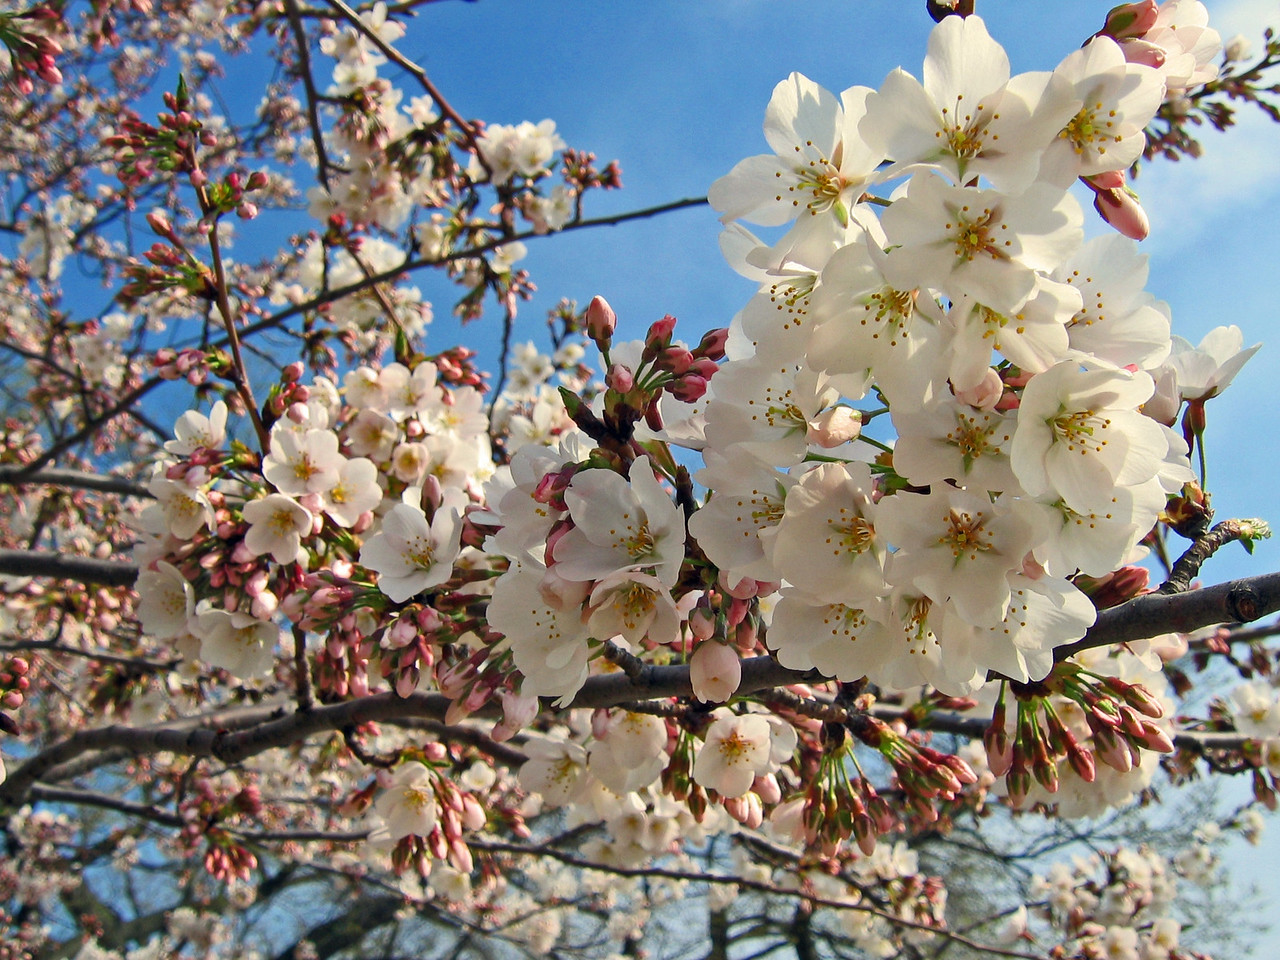 On August 30, 1909, the Embassy of Japan in Washington, D.C., informed the U.S. Department of State that the city of Tokyo intended to donate 2000 cherry trees to the United States to be planted along the Potomac. These trees arrived in Washington, D.C., on January 6, 1910. However, the inspection team from the Department of Agriculture found that the trees were infested with insects and nematodes, concluding that the trees had to be destroyed to protect local growers. President Taft gave the order to burn the trees on January 28.